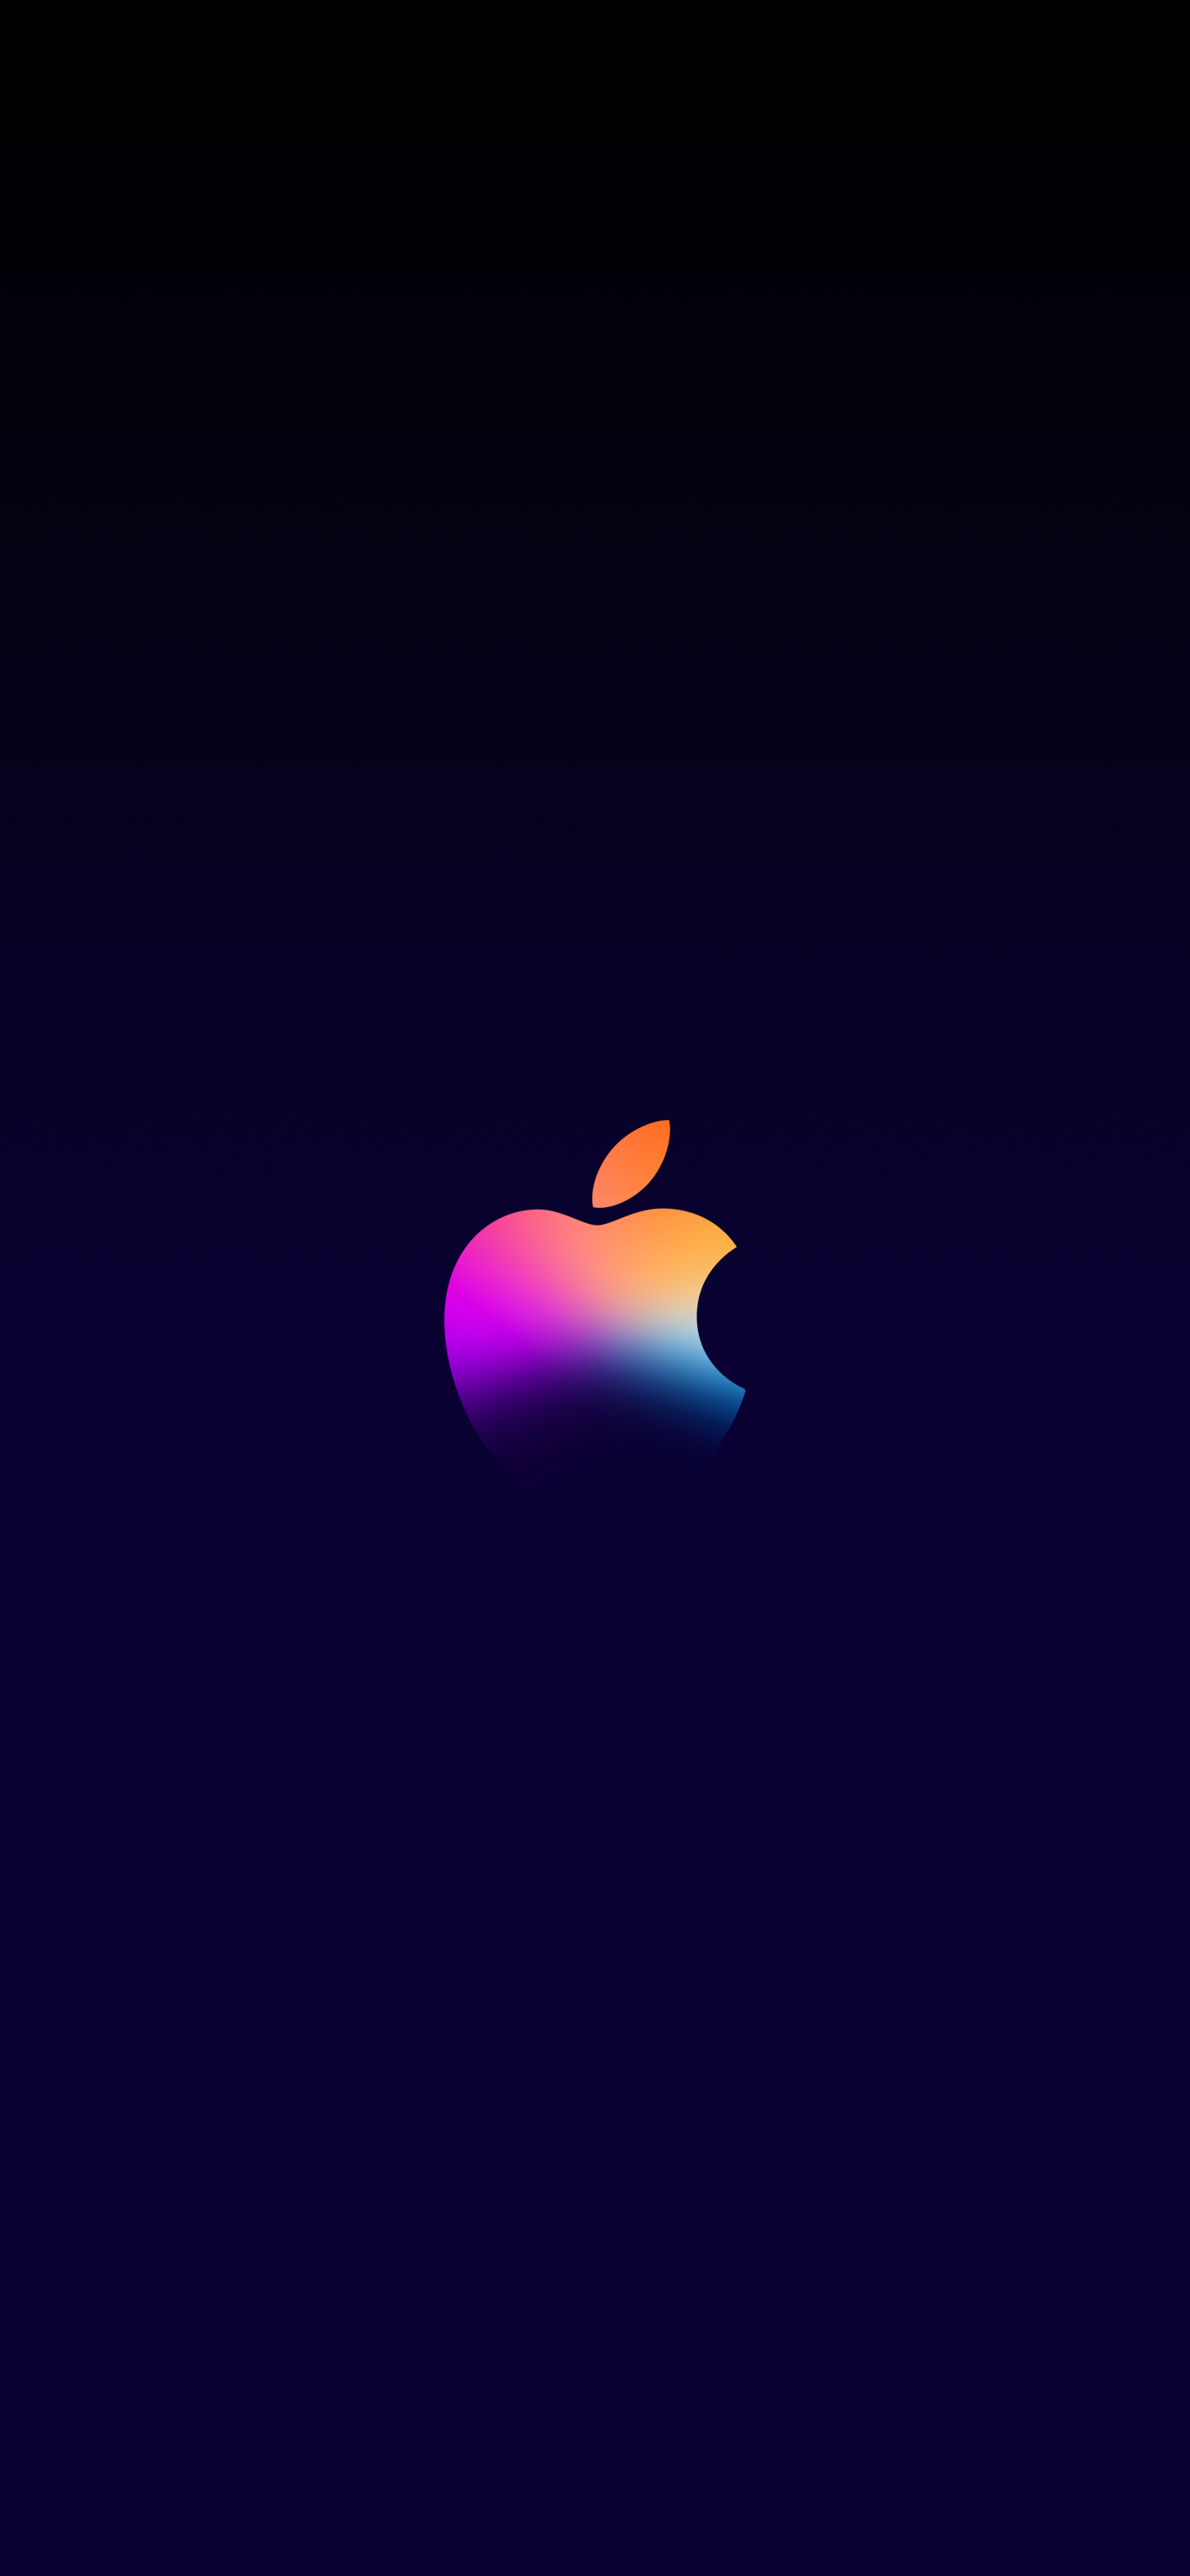 Apple Event One More Thing Wallpaper By Ispazio Wallpapers Central In 2021 Apple Logo Wallpaper Iphone Iphone Homescreen Wallpaper Apple Iphone Wallpaper Hd